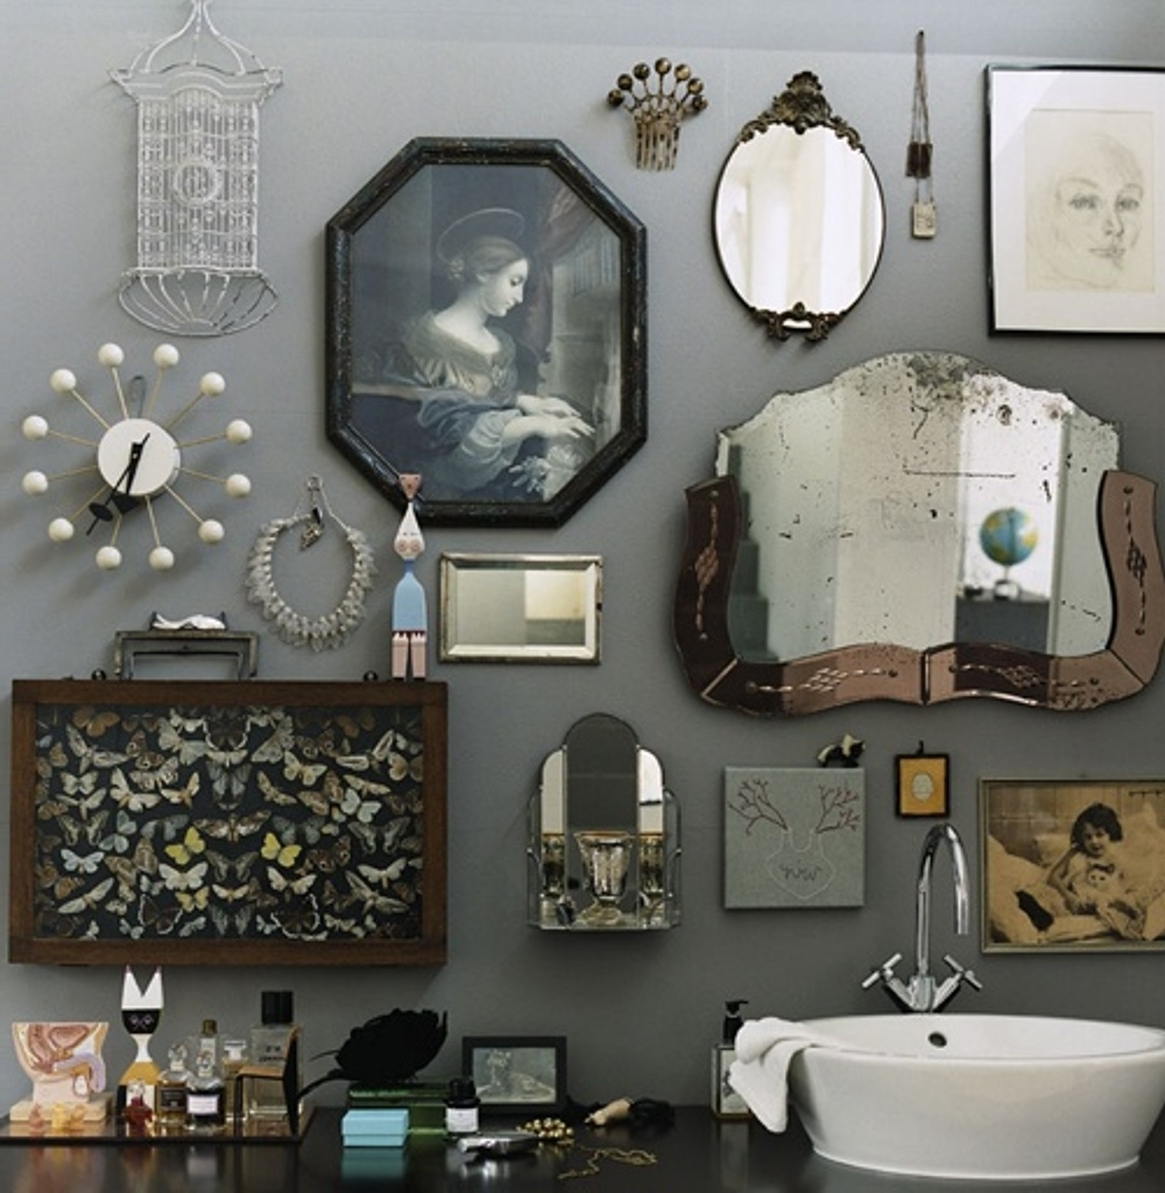 Antique Wall Accents Within Most Popular Charming Bathroom Wall Decor Inspirations — The Home Redesign (View 1 of 15)